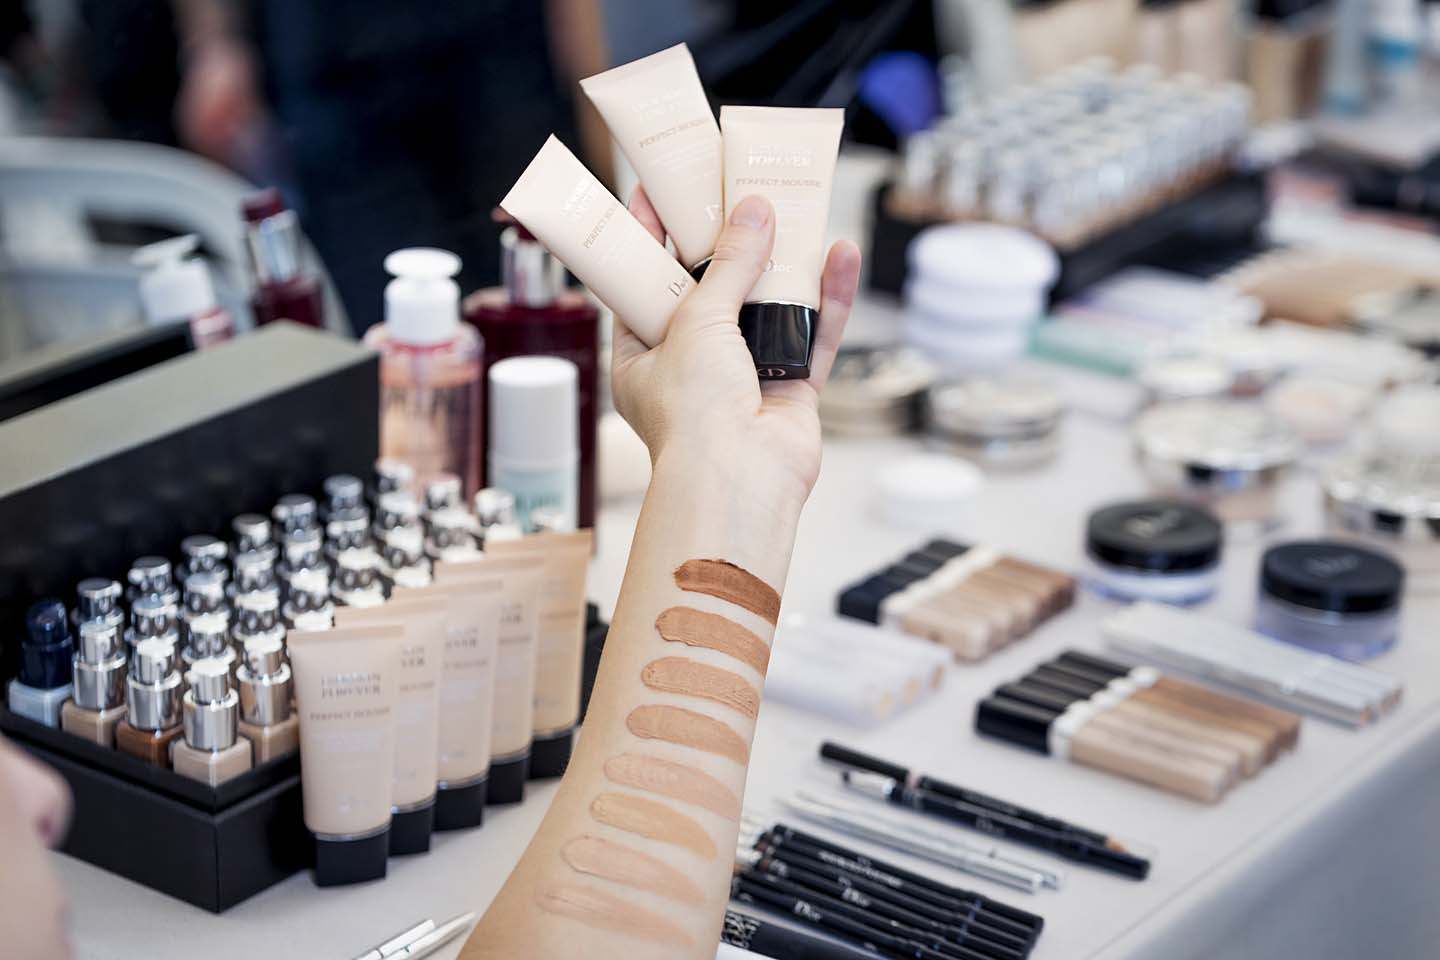 dior-spring-summer-2018-ss18-rtw-makeup-beauty-looks (3)-foundation-shades